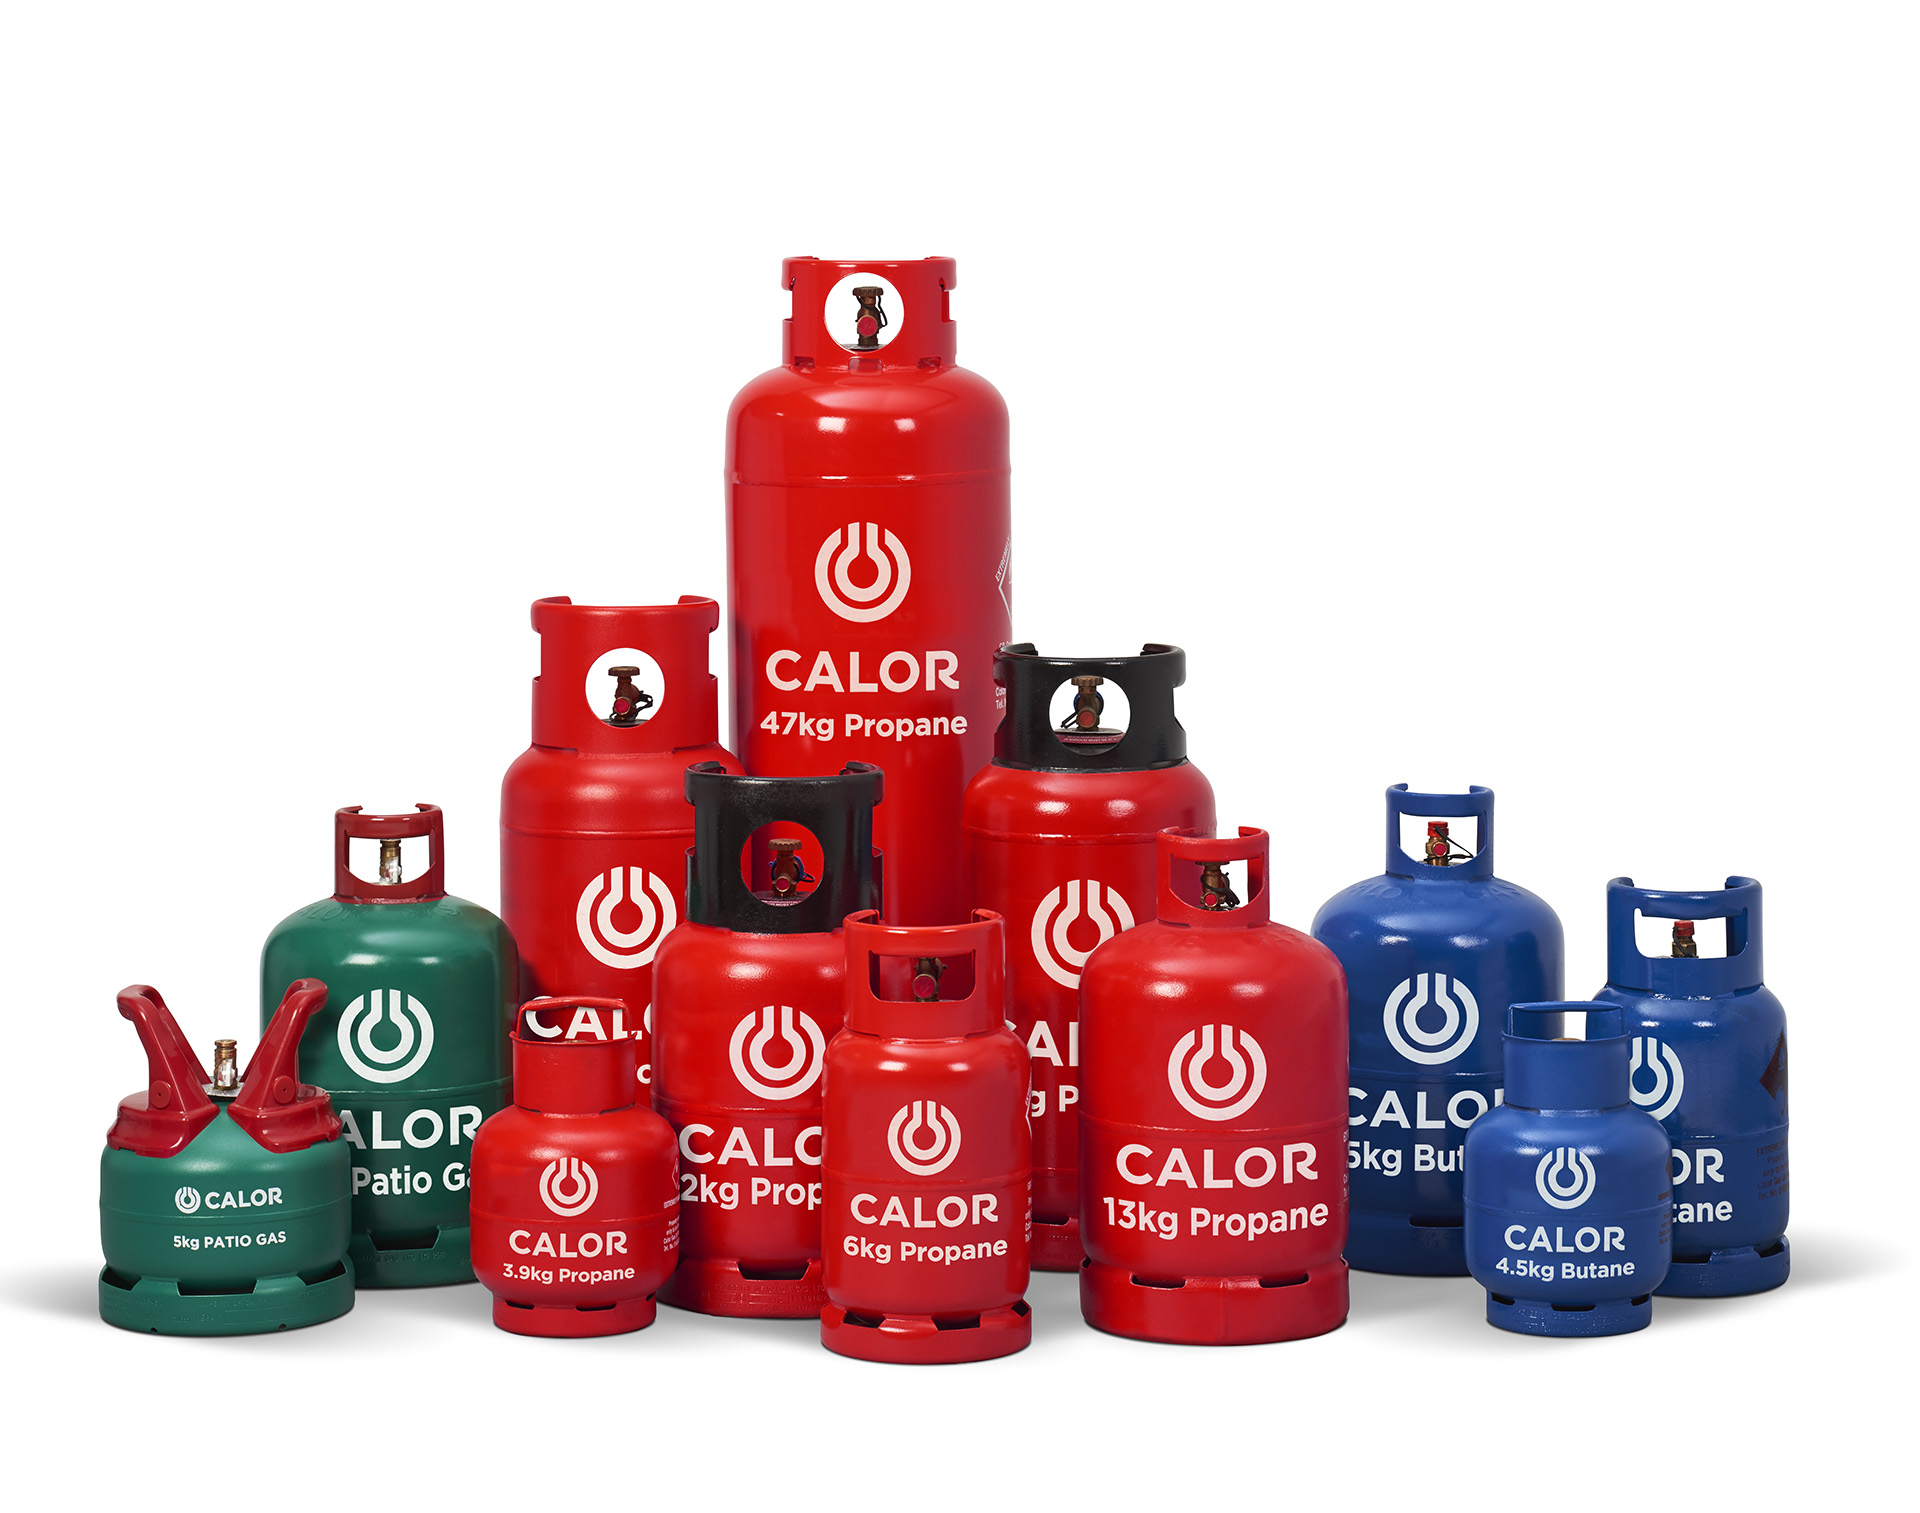 A collection of propane, butane and patio Calor gas bottles